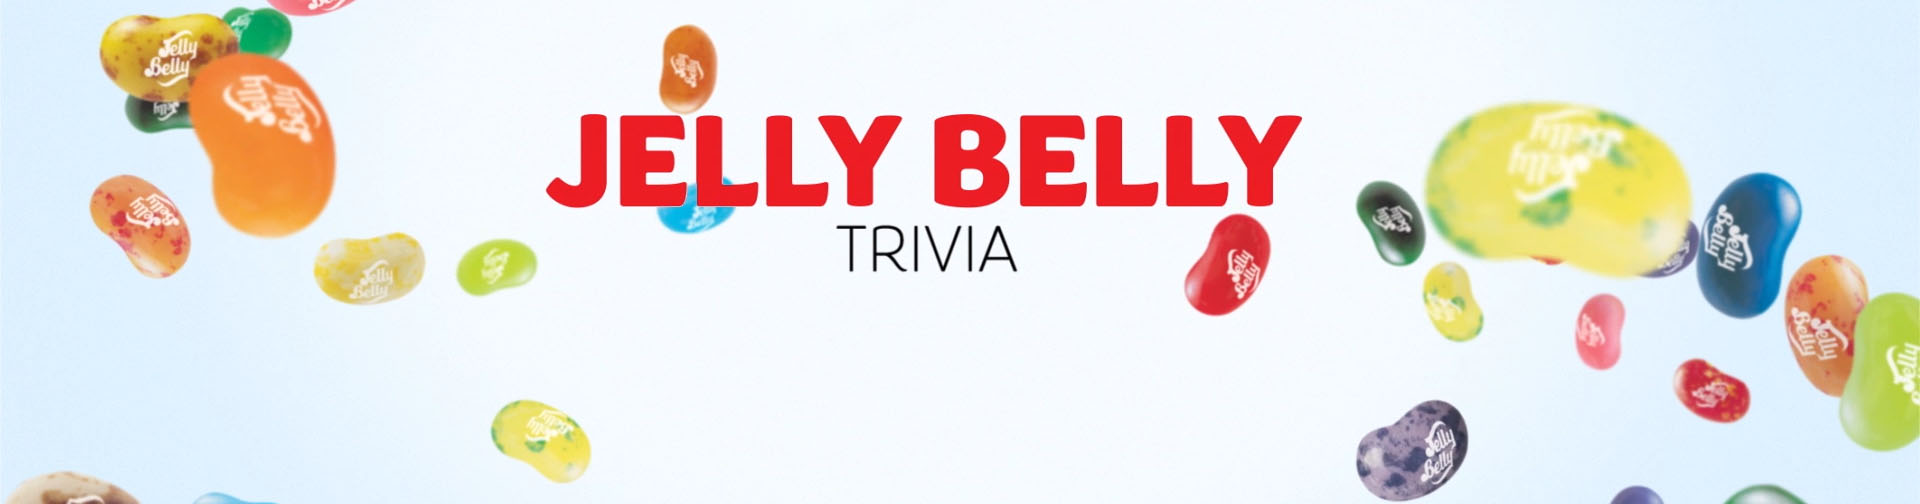 Jelly Belly Candy Company shares behind-the-scenes candy trivia